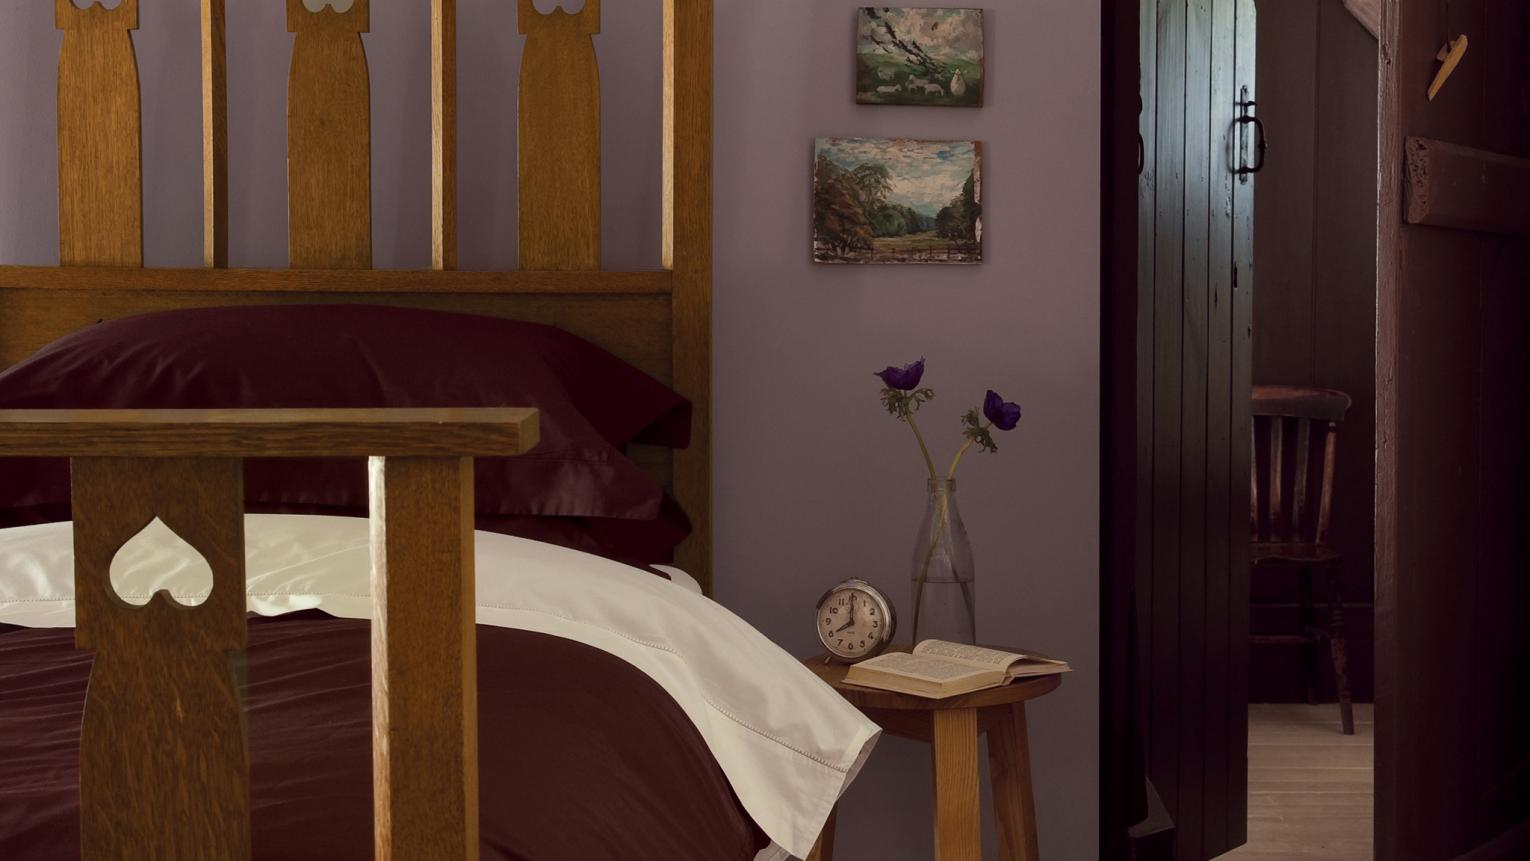 Purple walls bring warmth and nostalgia to this comfortable bedroom.